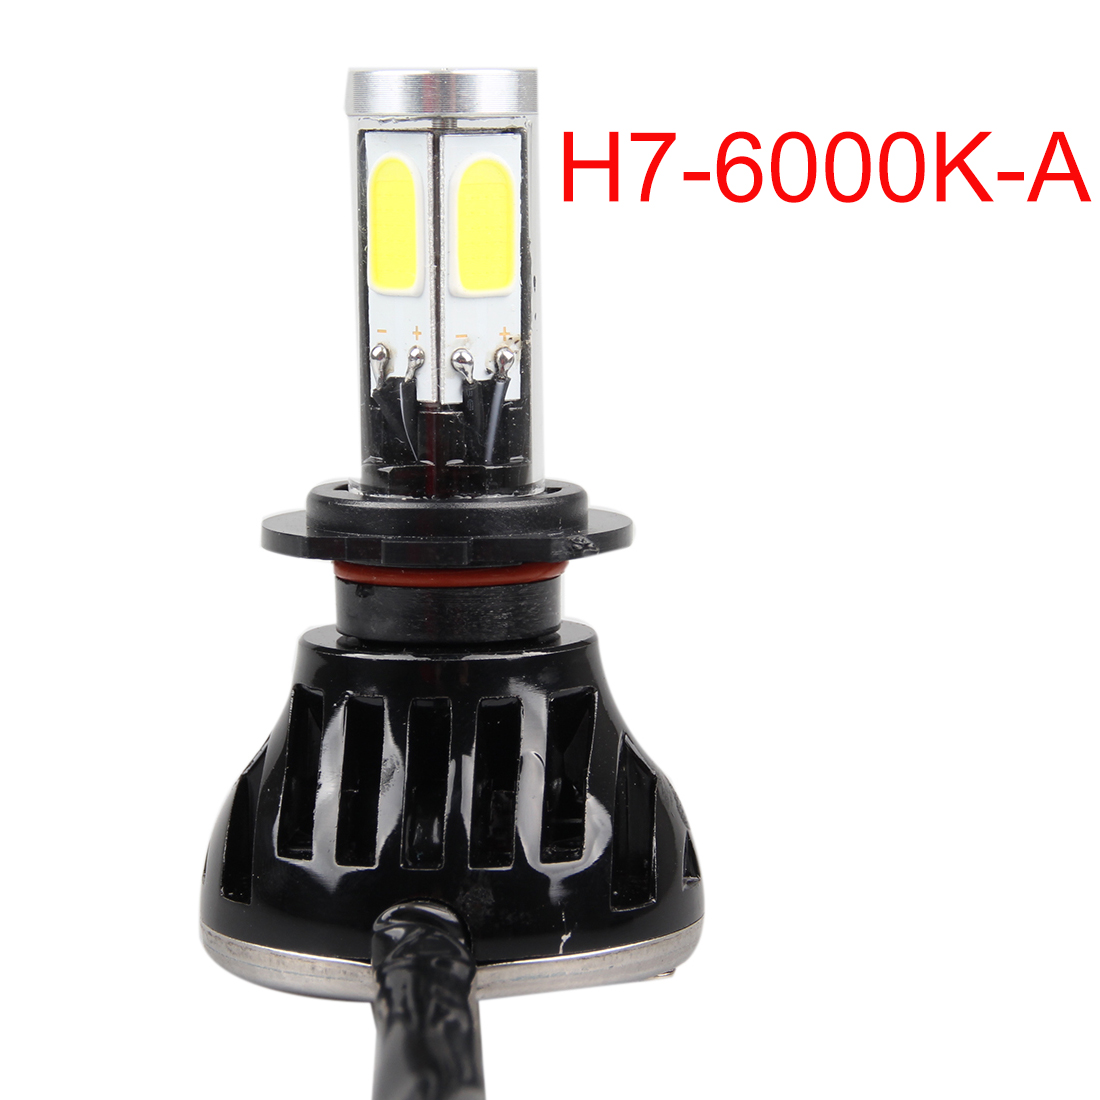 6000K Led Car Auto Headlight H7 80W 8000LM 4 COB Led All In One White Bulb for Automotives Headlight Fog lamp дефлектор auto h k gt 36964